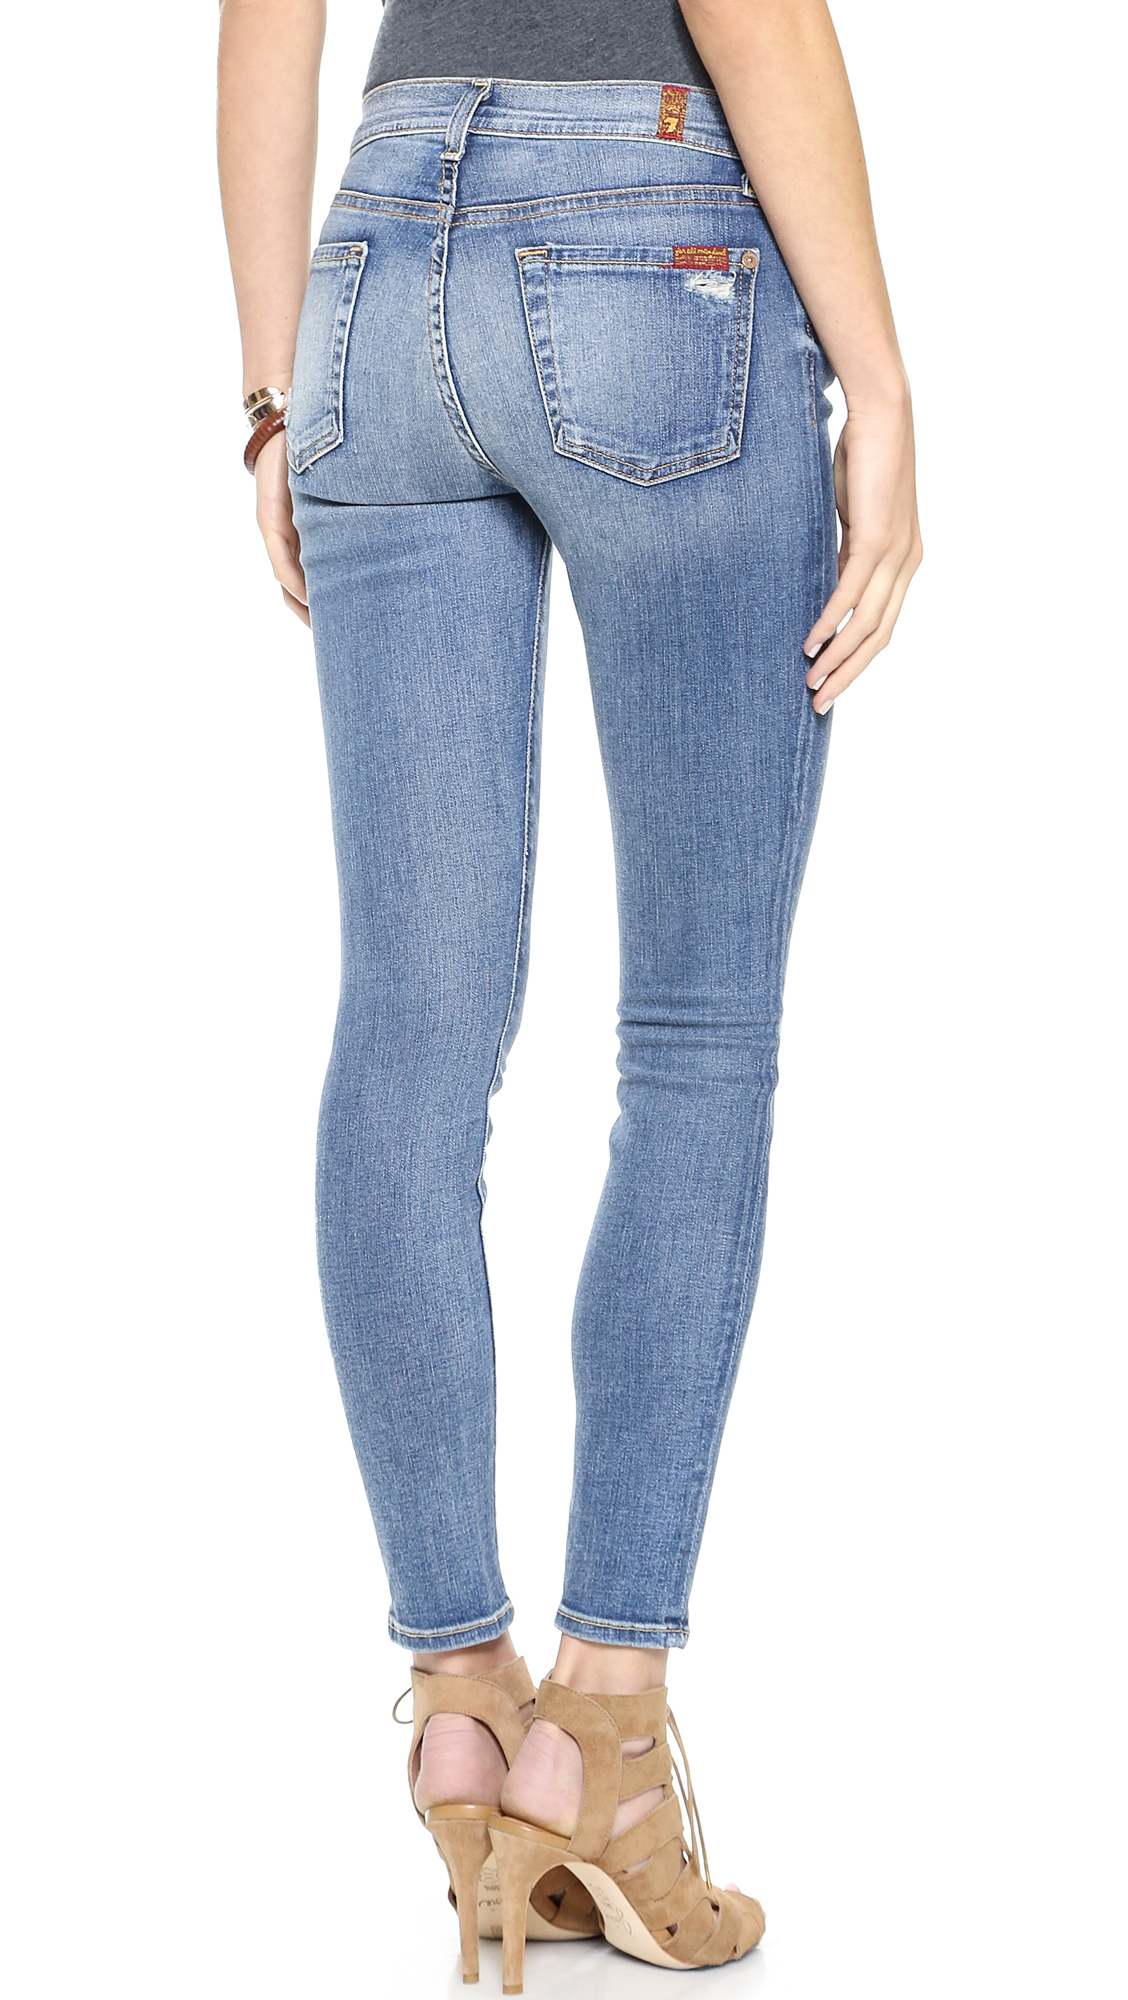 lyst 7 for all mankind the ankle skinny jeans absolute heritage in blue. Black Bedroom Furniture Sets. Home Design Ideas